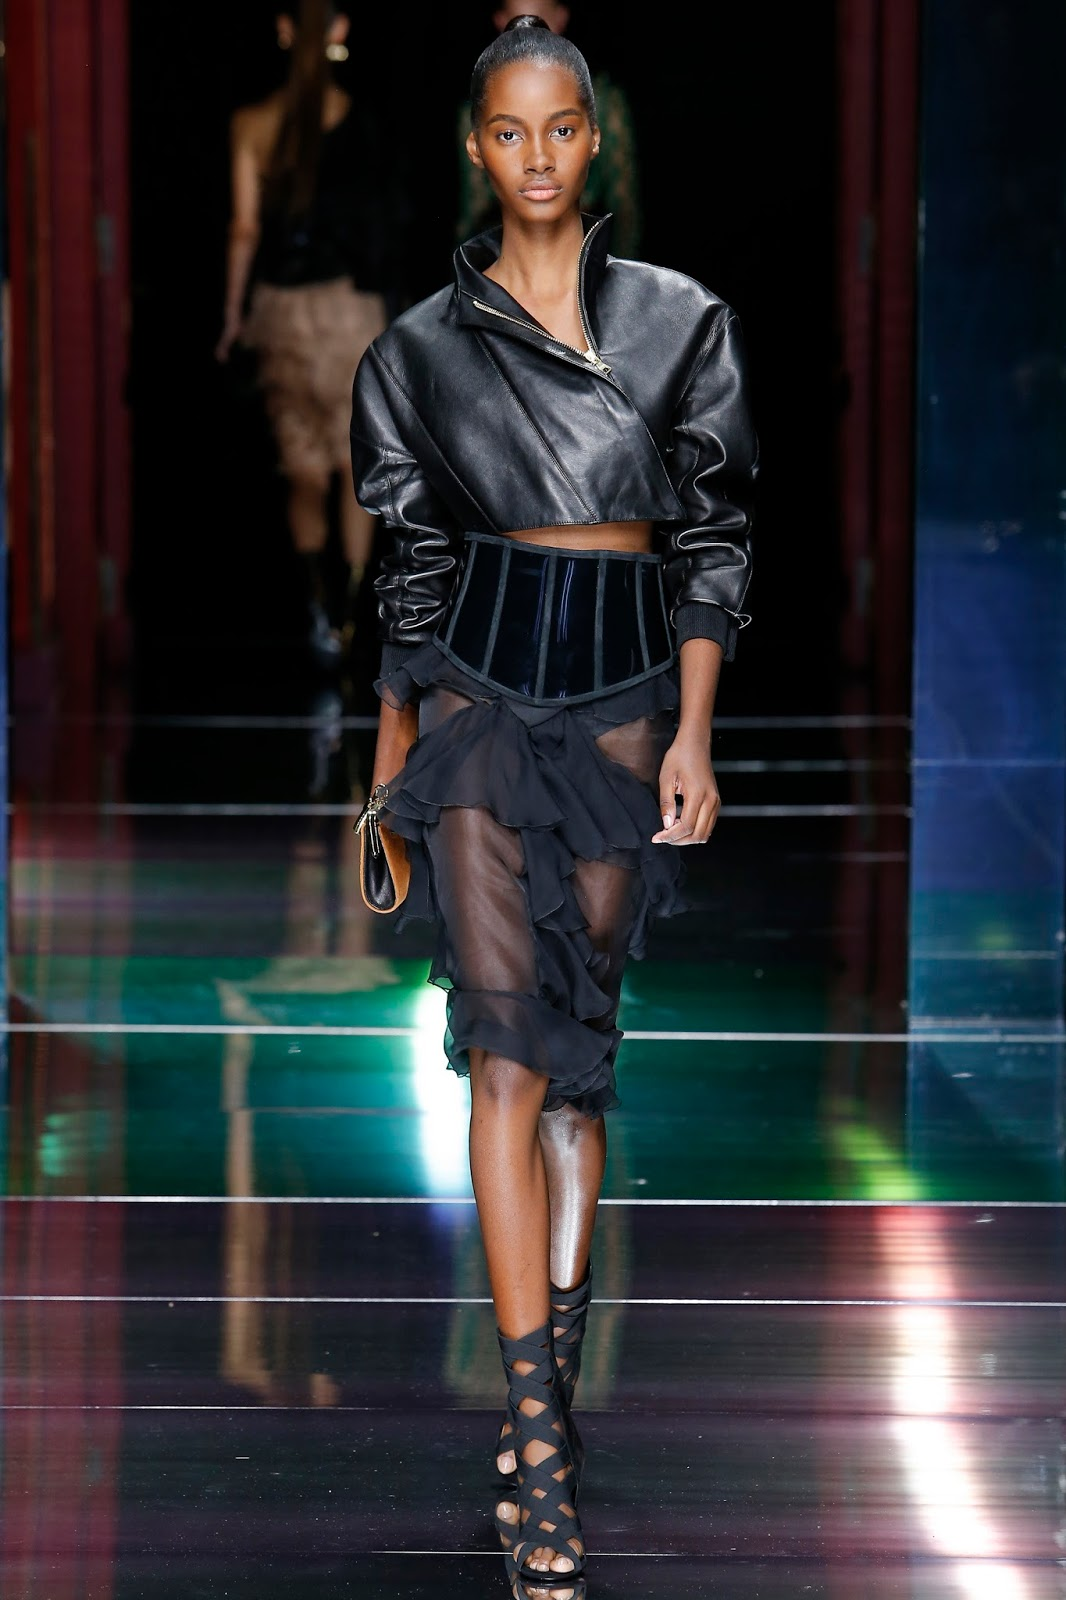 Paris Fashion Week, Spring 2016, Ready to Wear, pfw, rtw, runway fashion, balmain